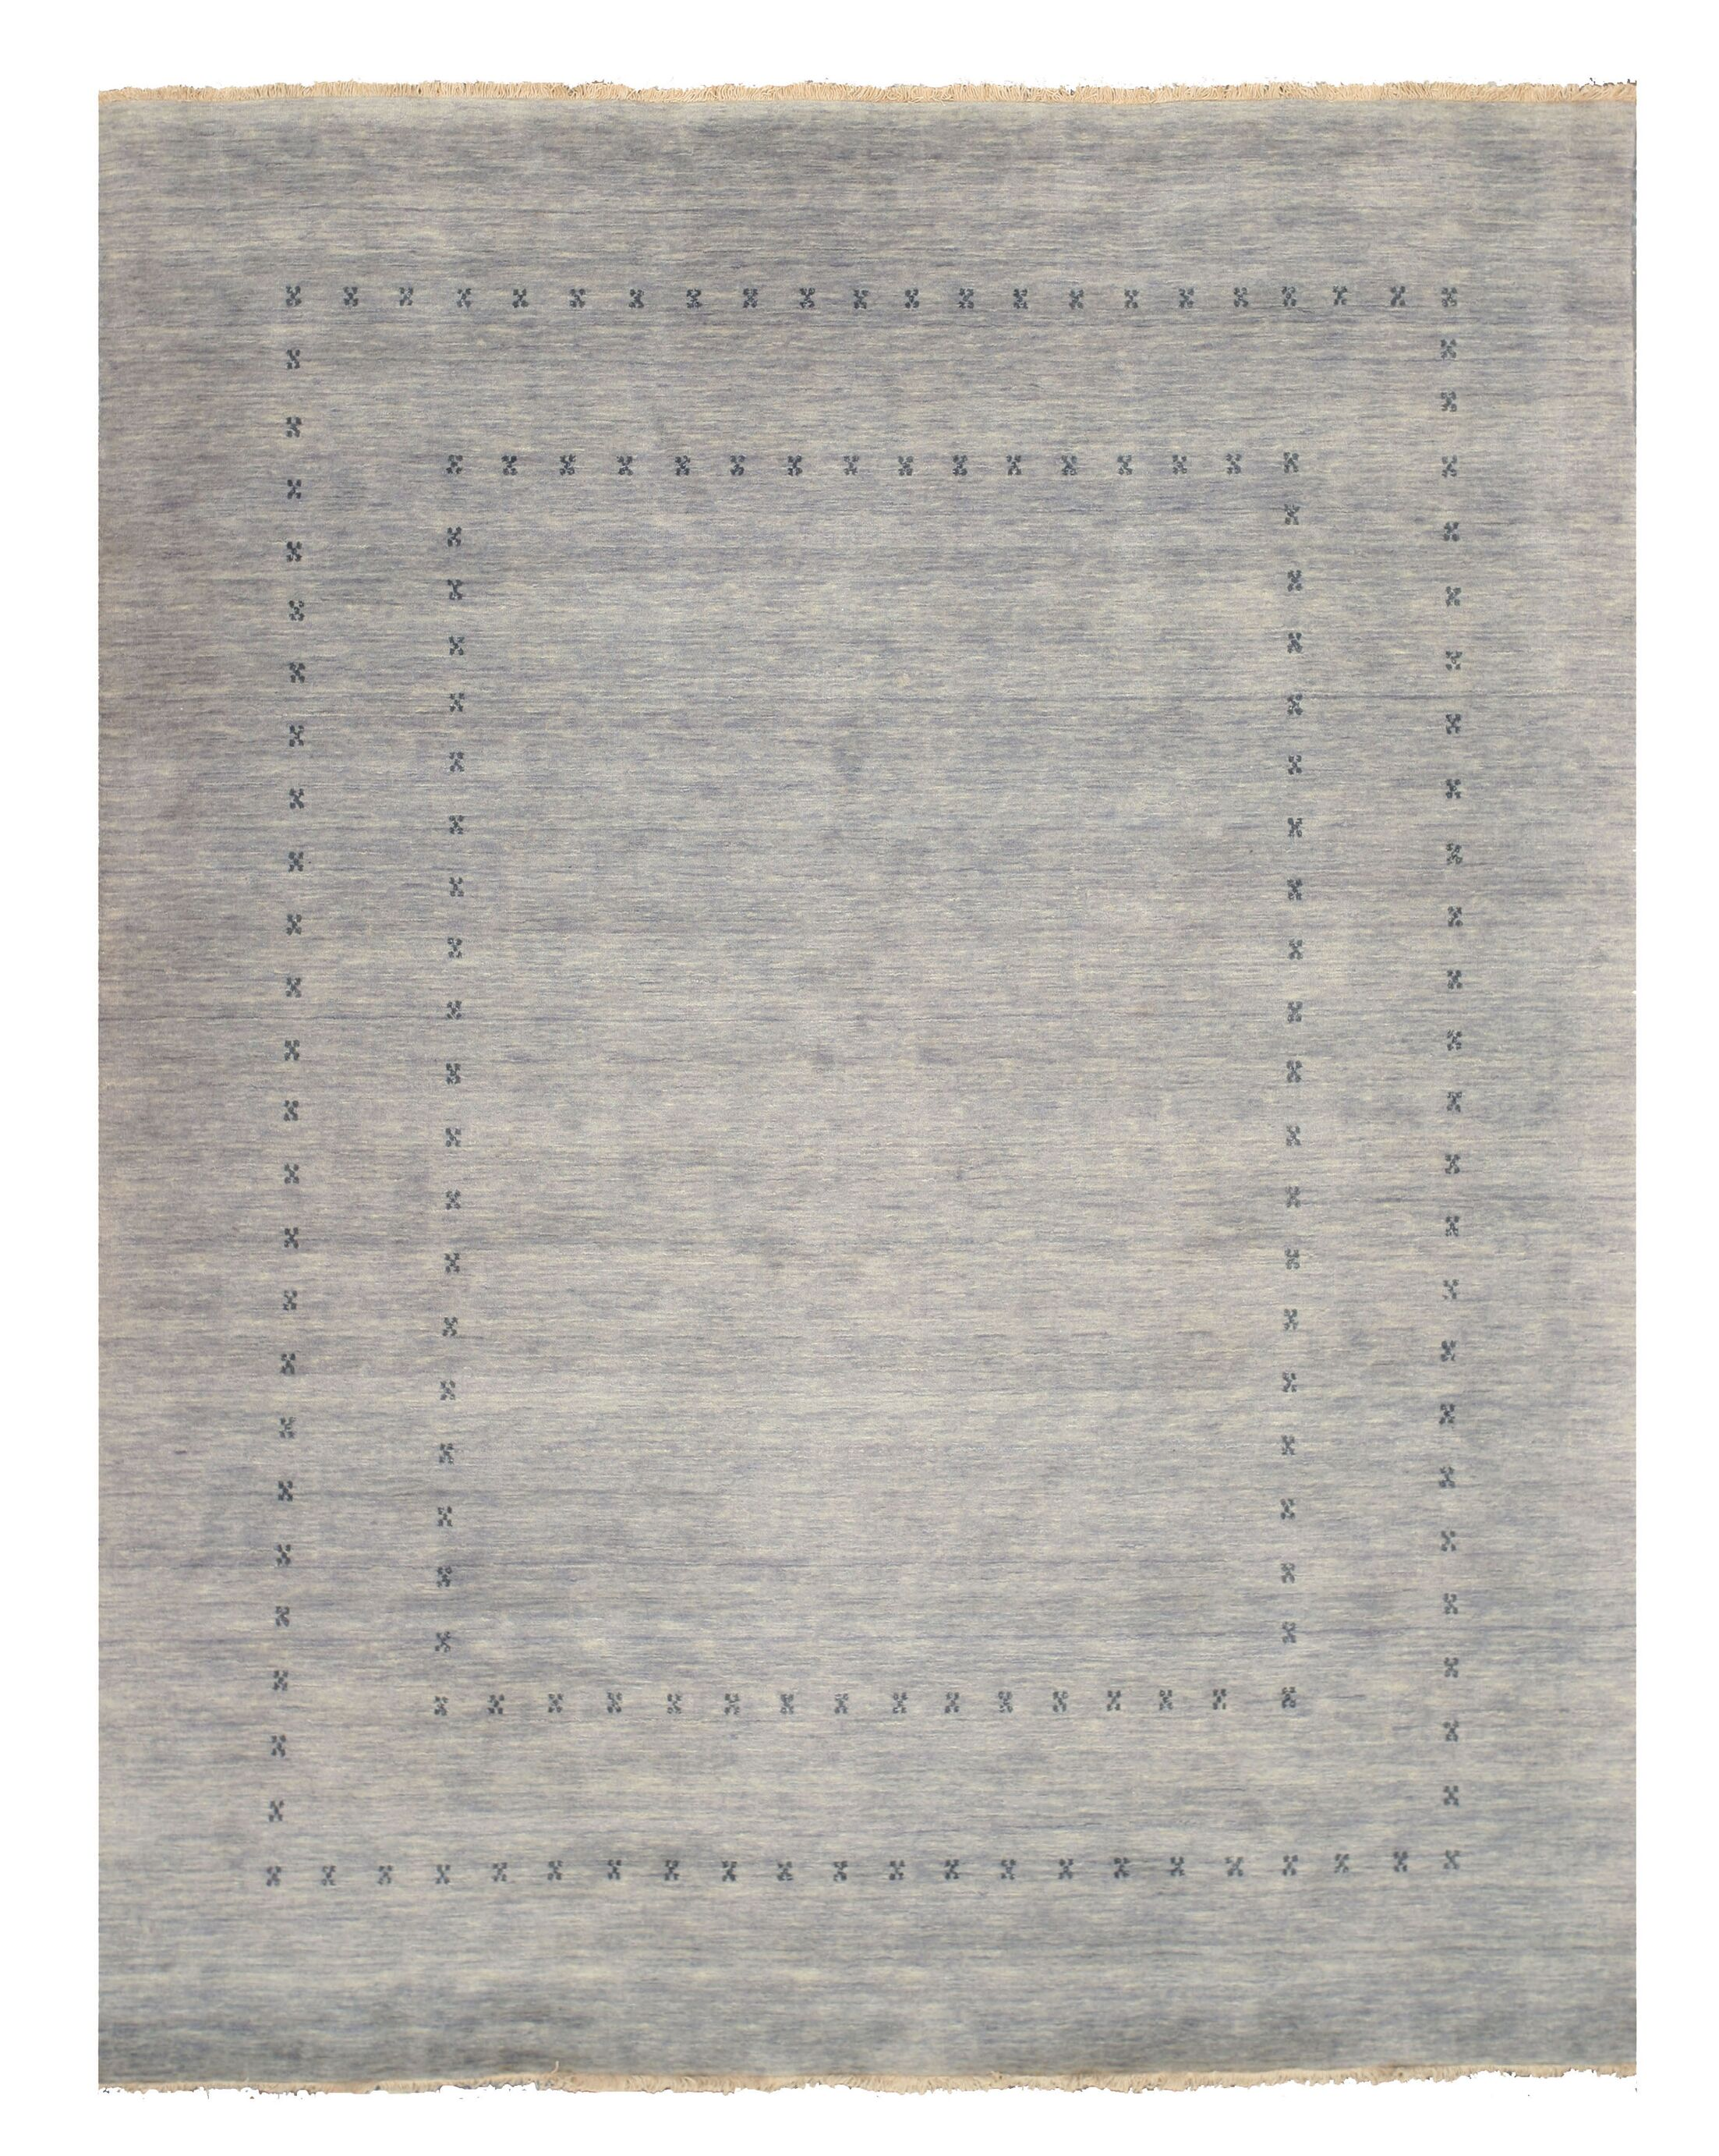 Drennon Hand-Knotted Gray Area Rug Rug Size: 8' x 10'